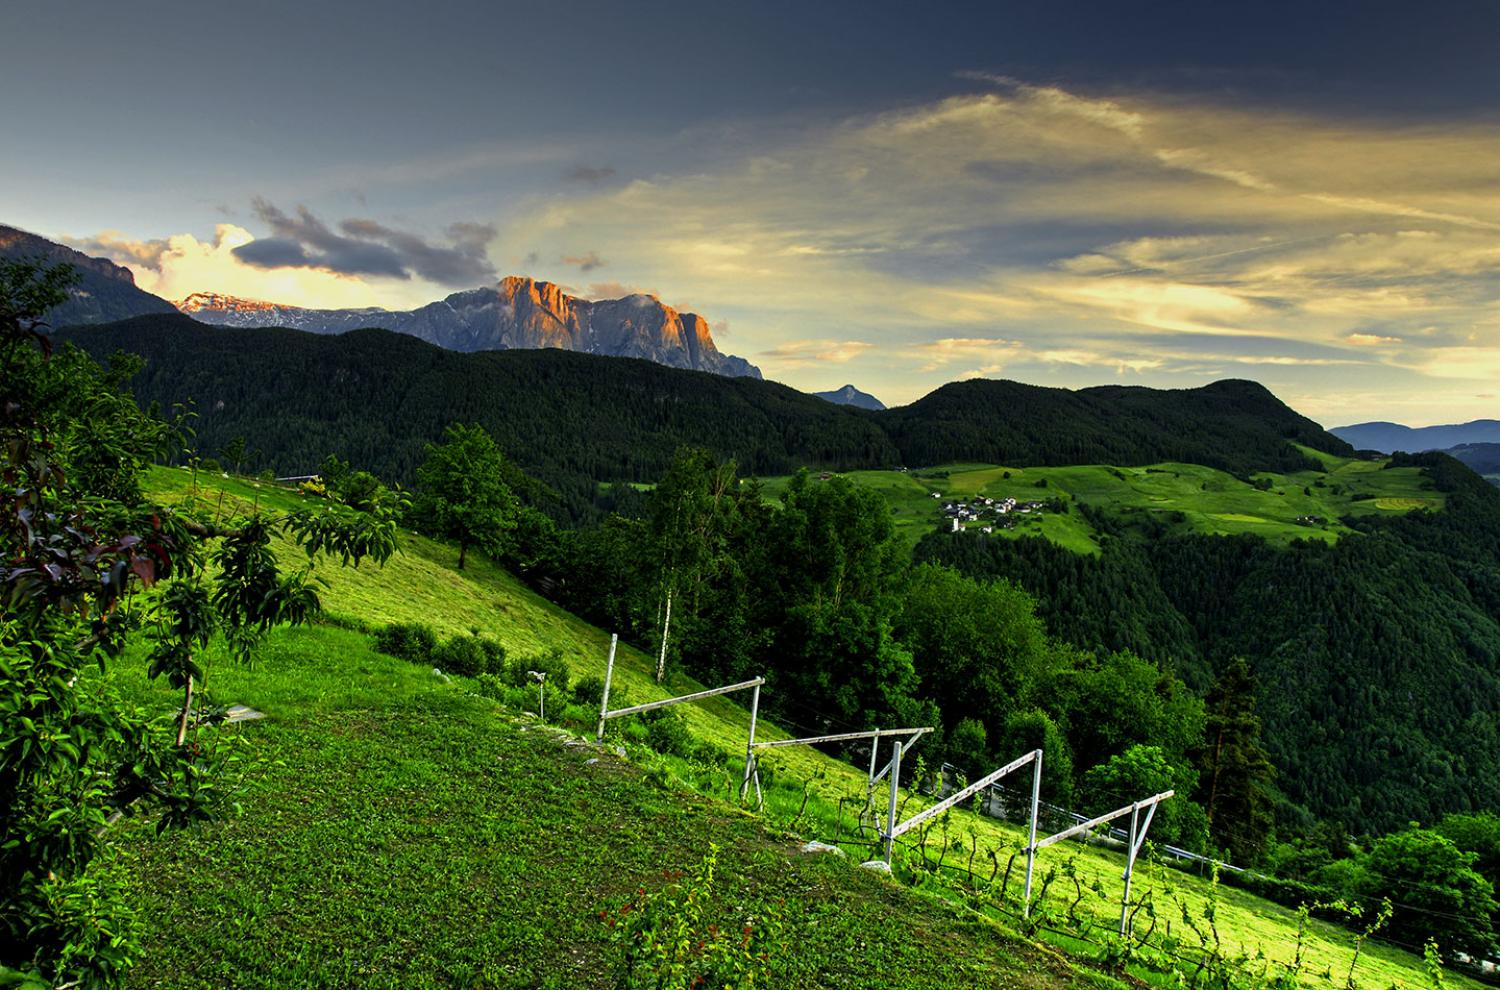 Wonderful views of the magnificent Dolomite mountains